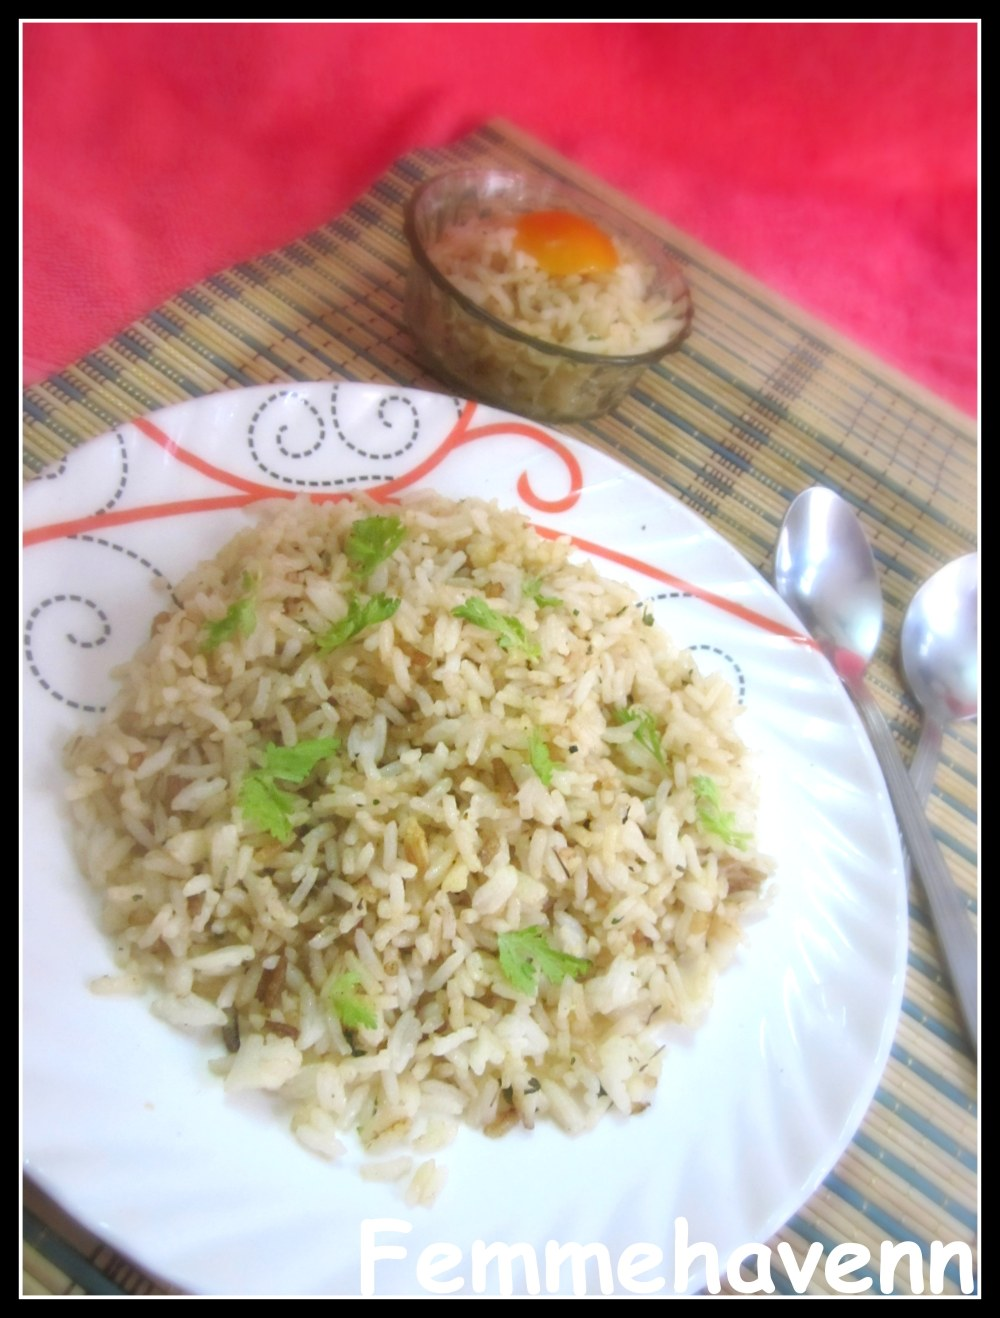 Chilli-Garlic Fried RIce